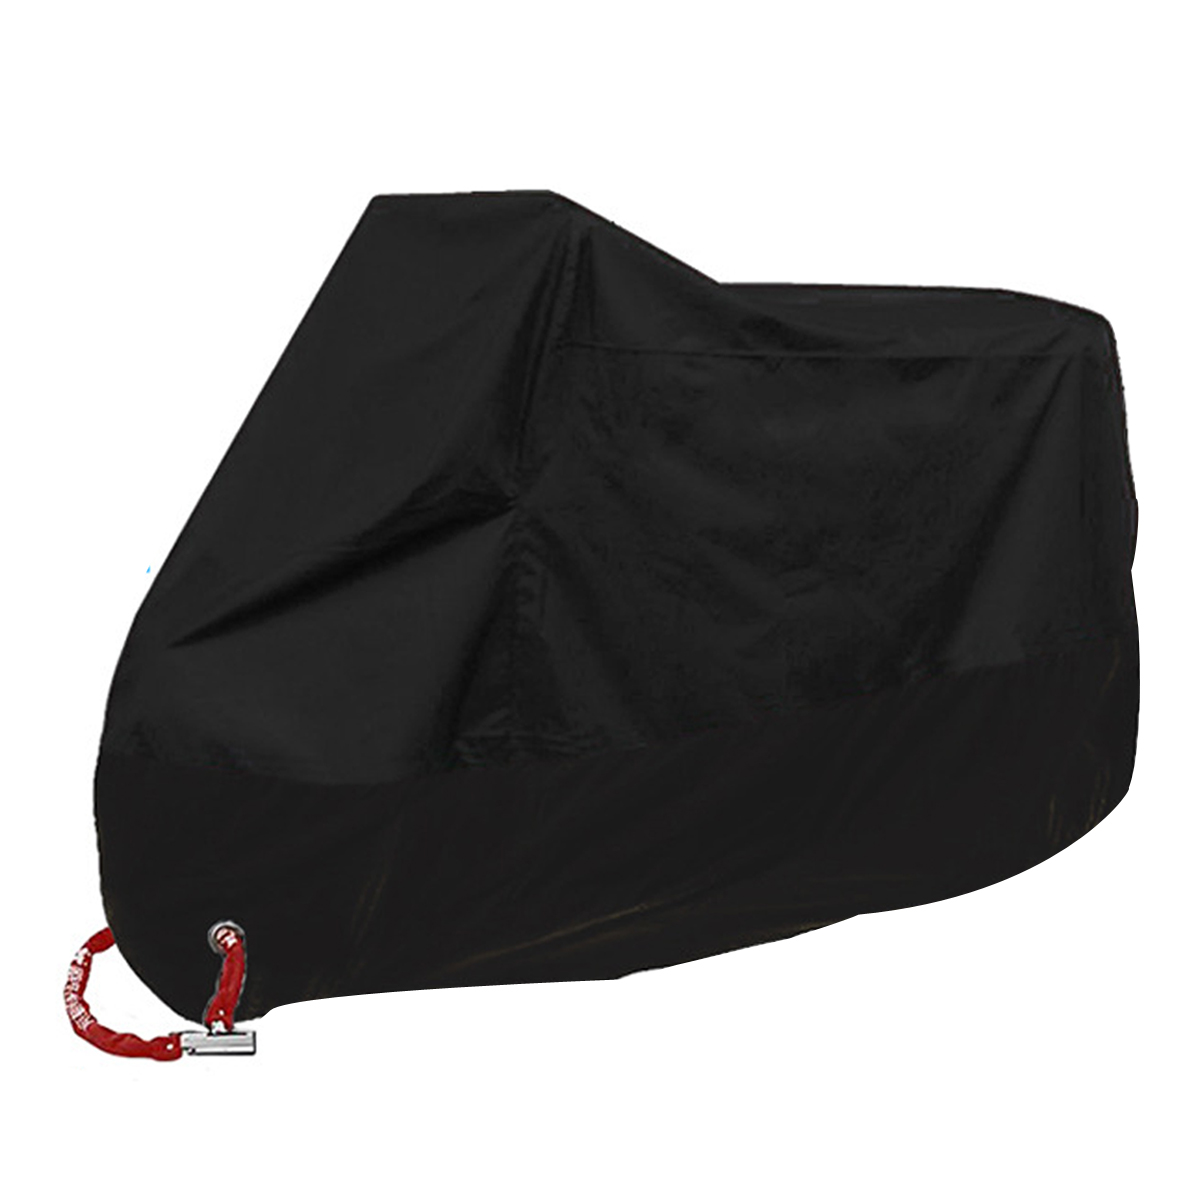 All Season Universal Waterproof Sun Protection Motorcycle Vehicle Cover Motorcycle Tarp Dustproof with Storge Bag 265X105X125cm Motorcycle Cover